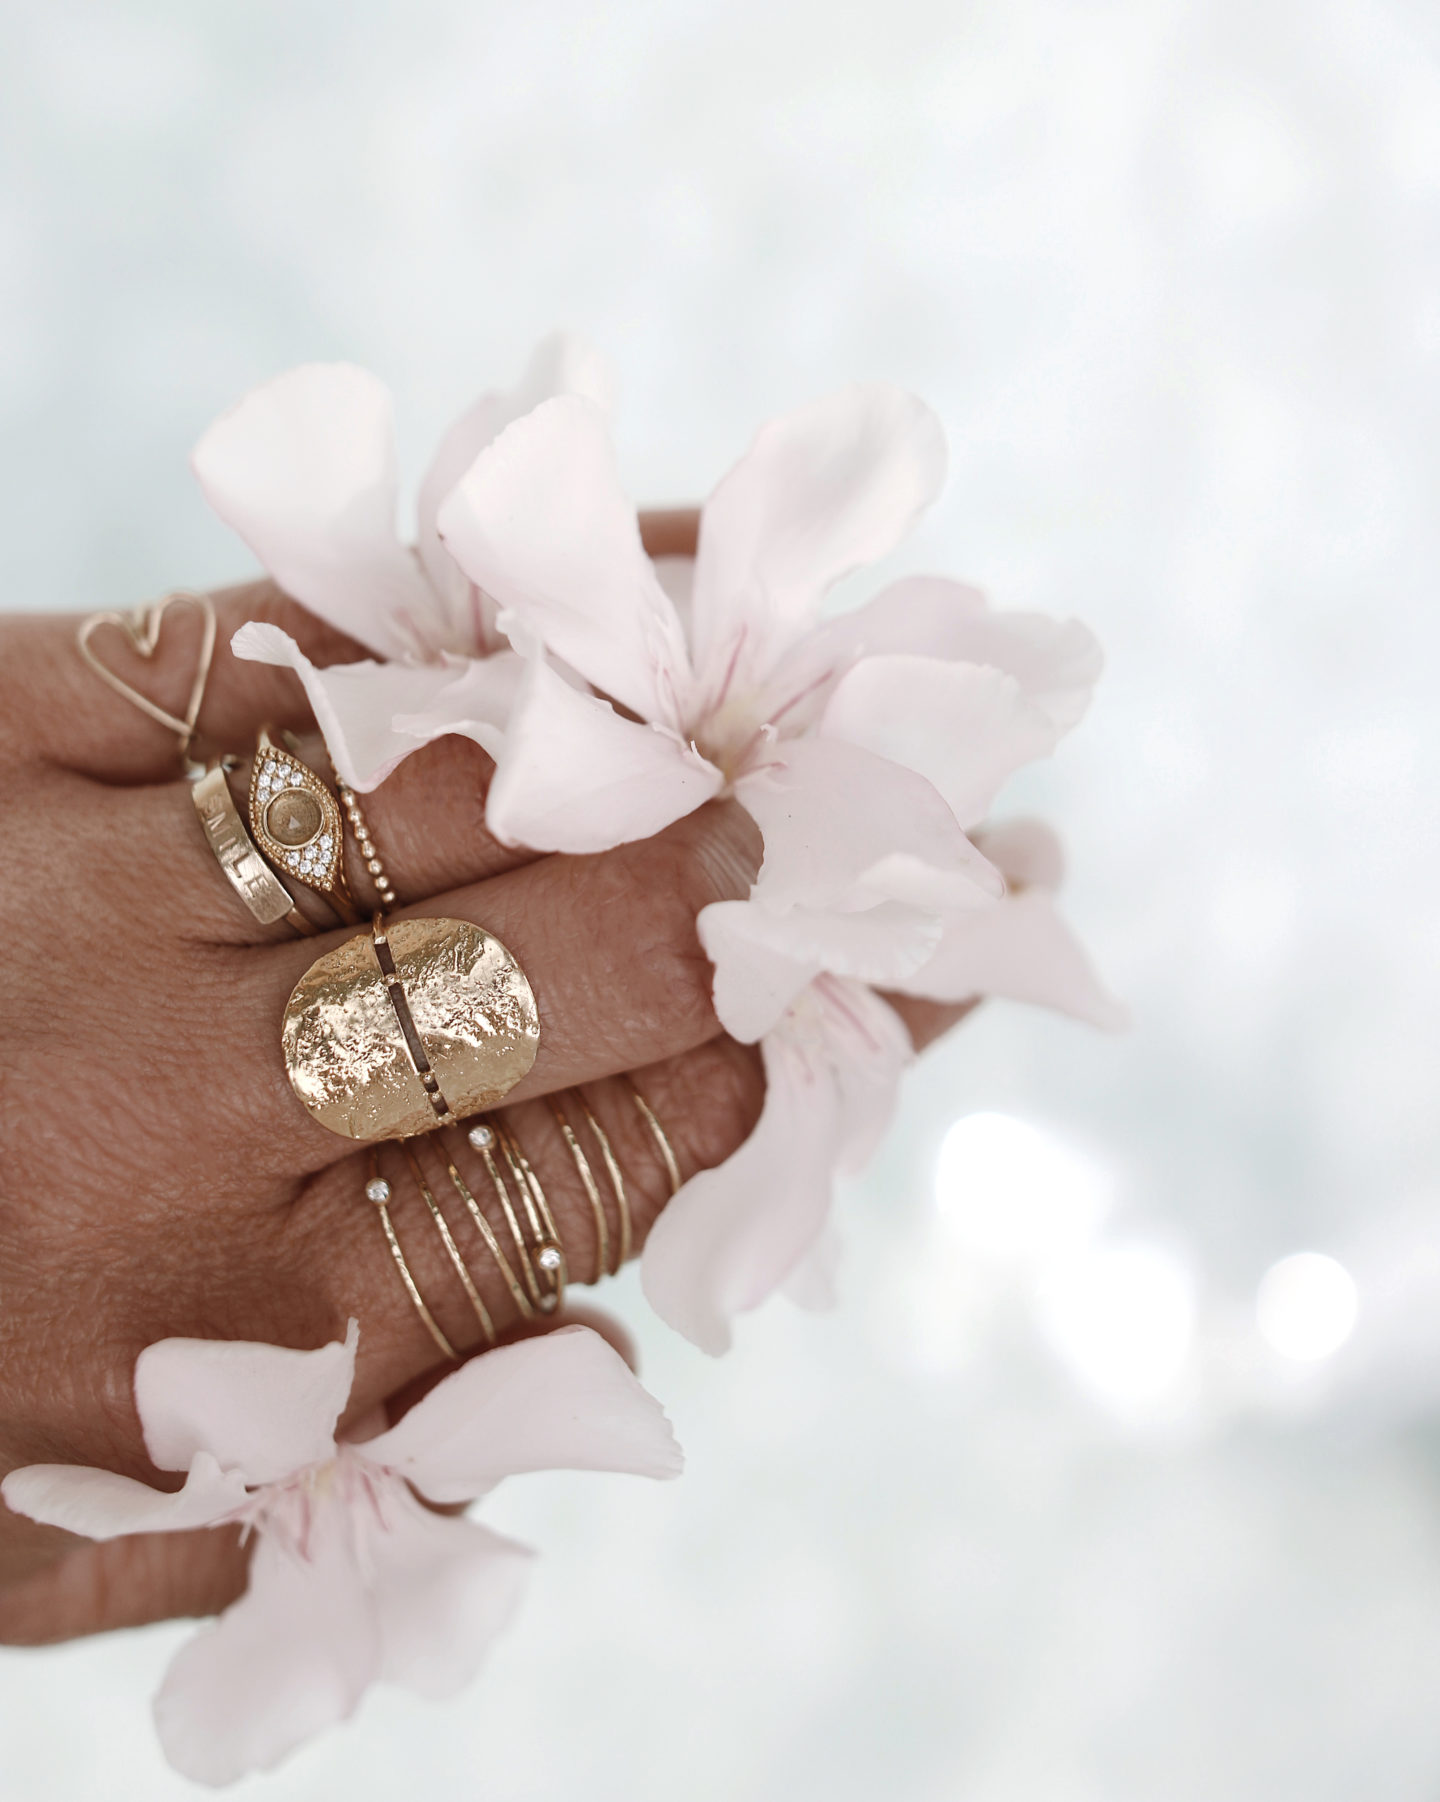 jewelry addict, rings , gold rings, jewelry inspiration, handmade jewelry